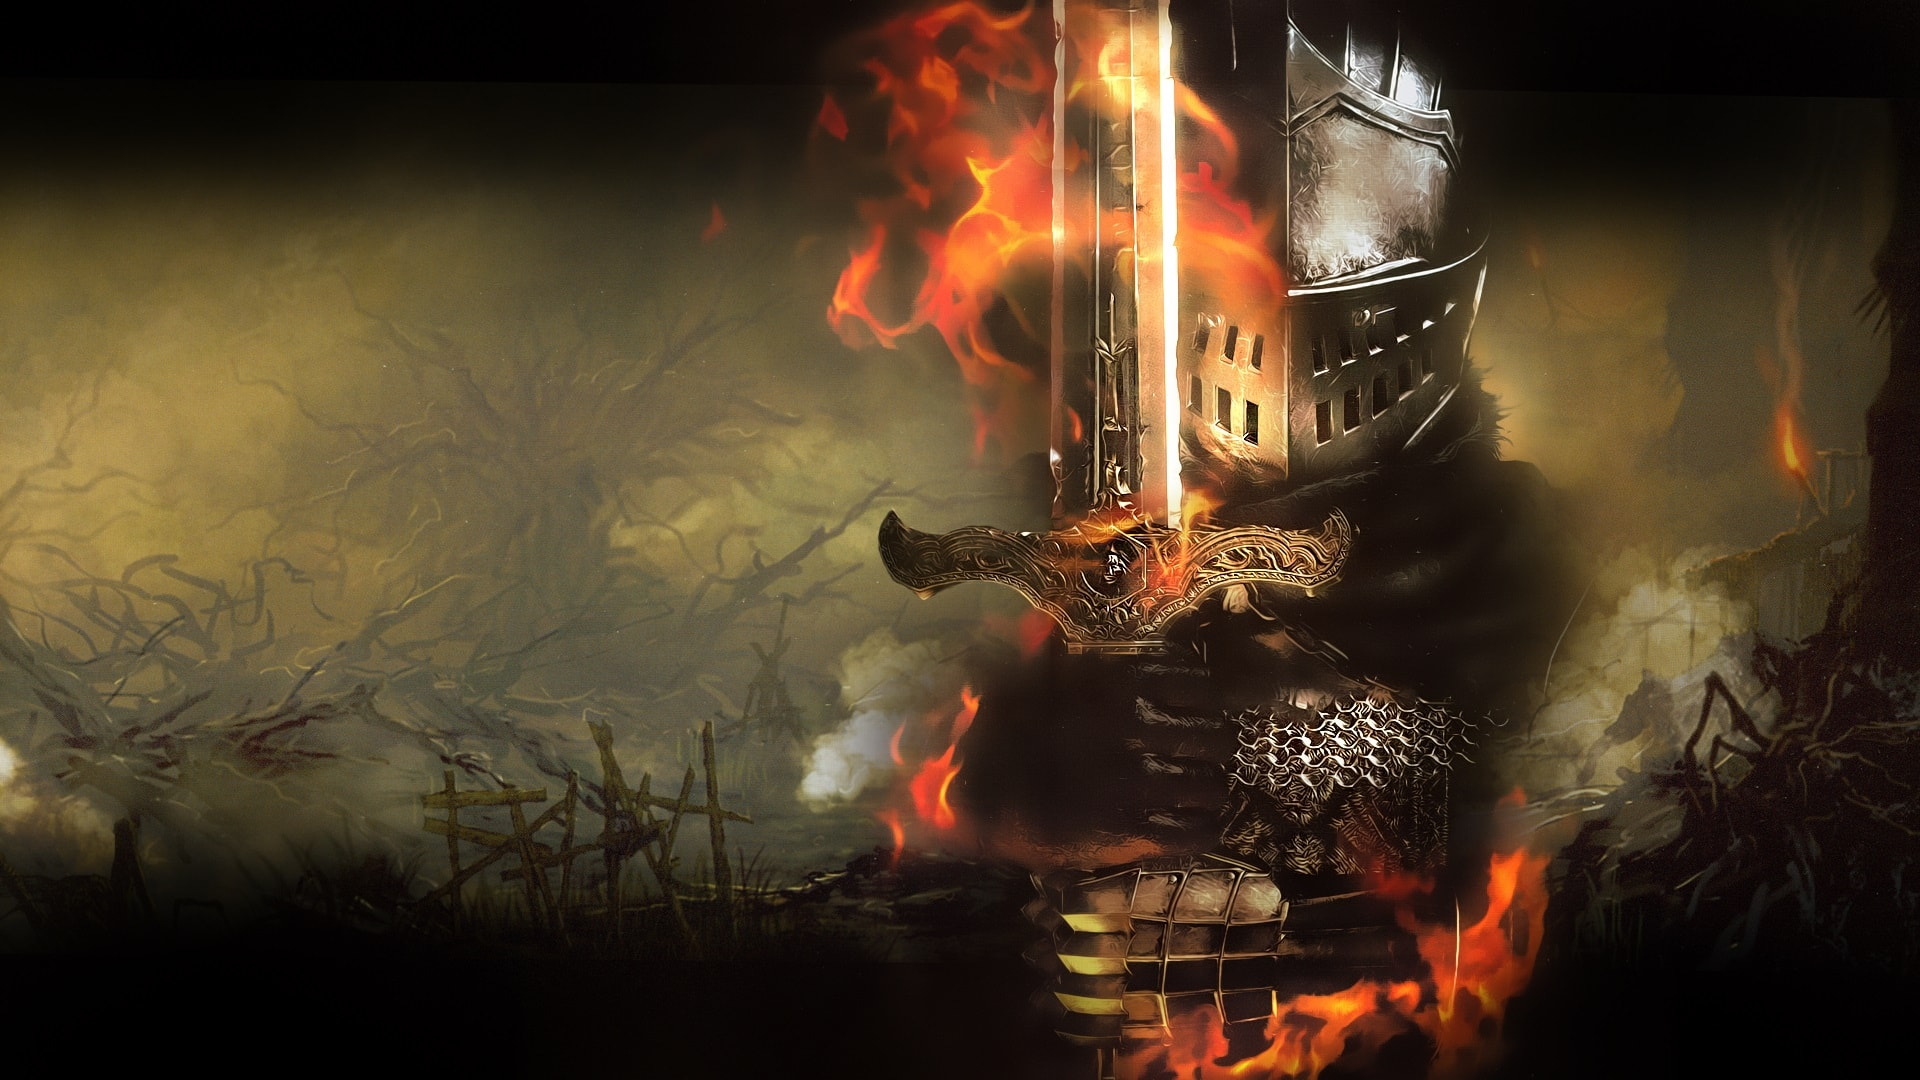 Dark Souls 2 Hd Wallpapers 7wallpapers Net